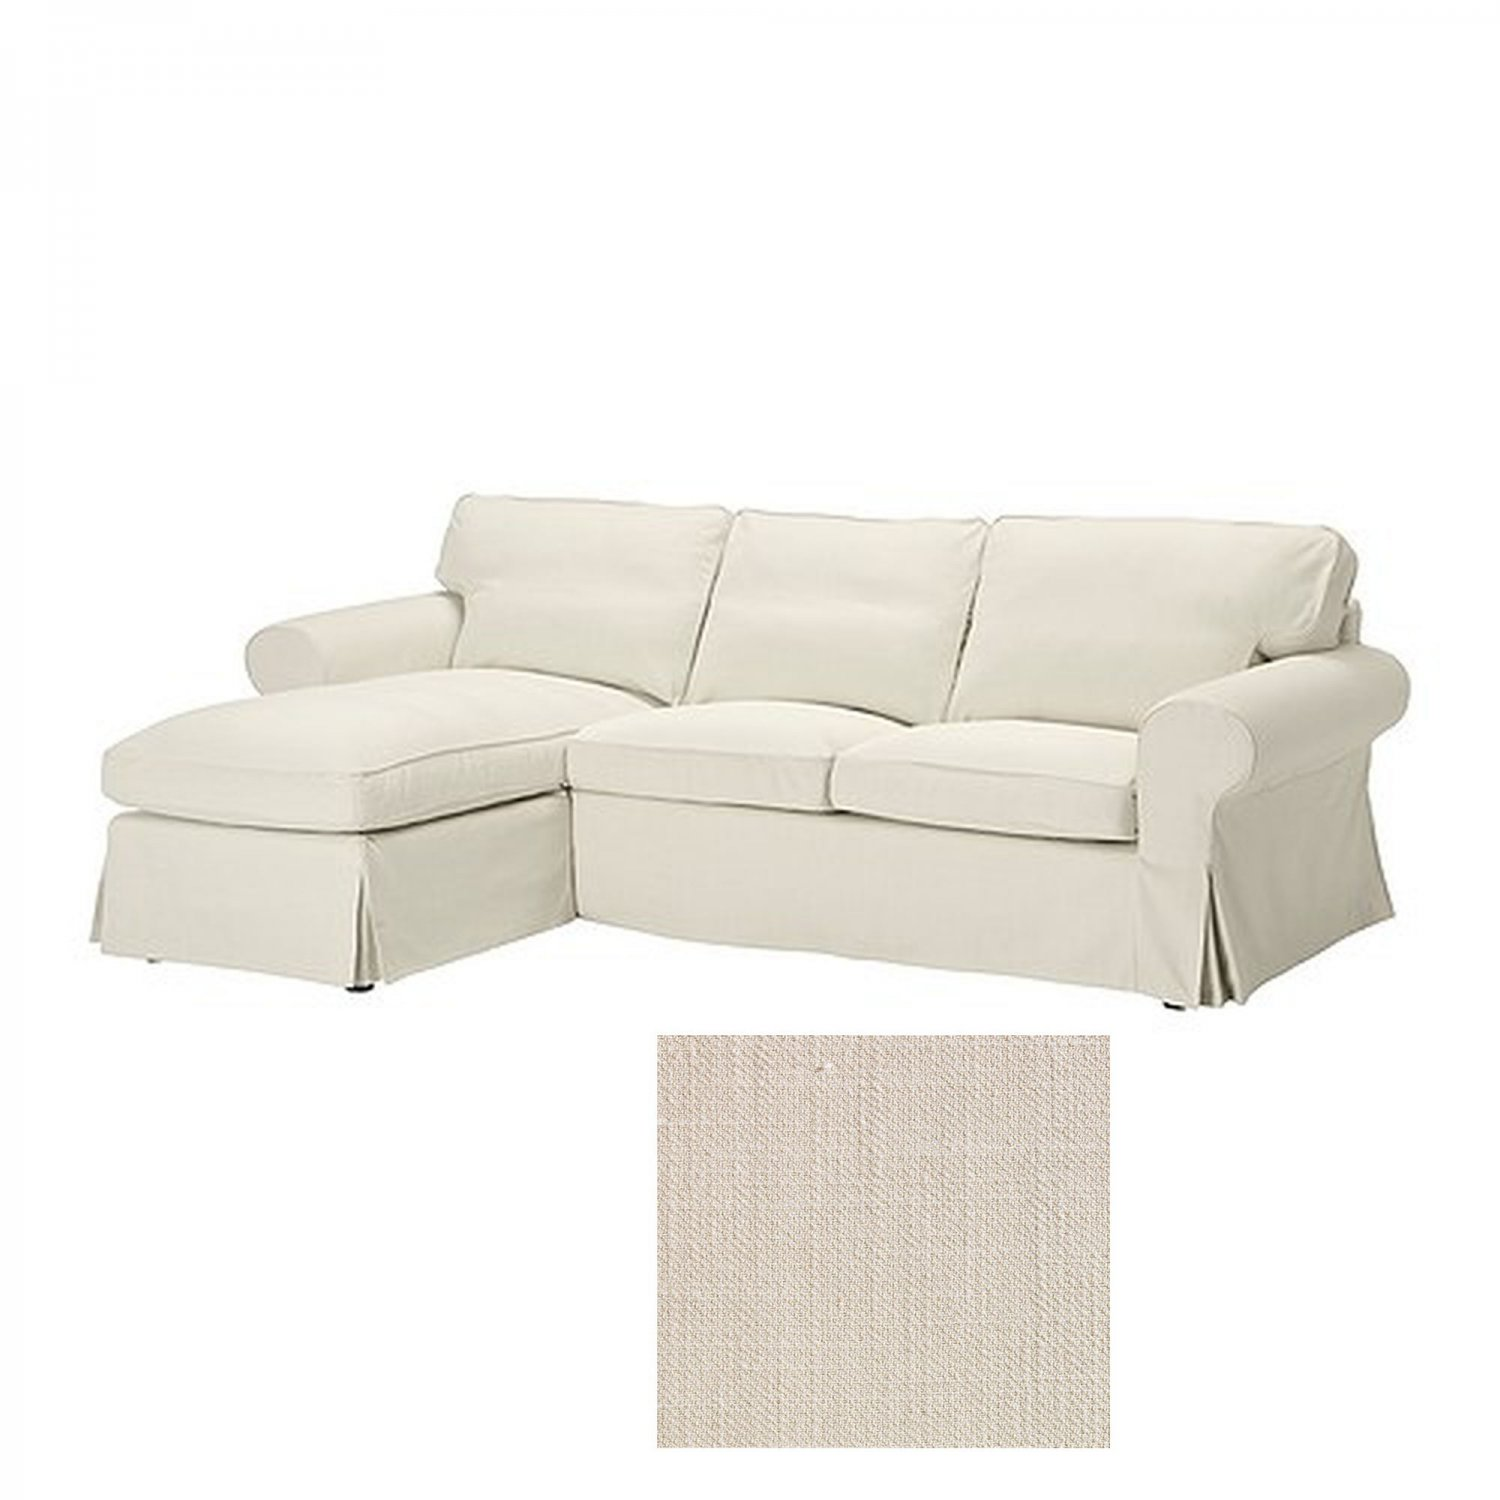 ikea karlanda sofa covers uk taupe decorating ideas ektorp 2 seat loveseat with chaise cover